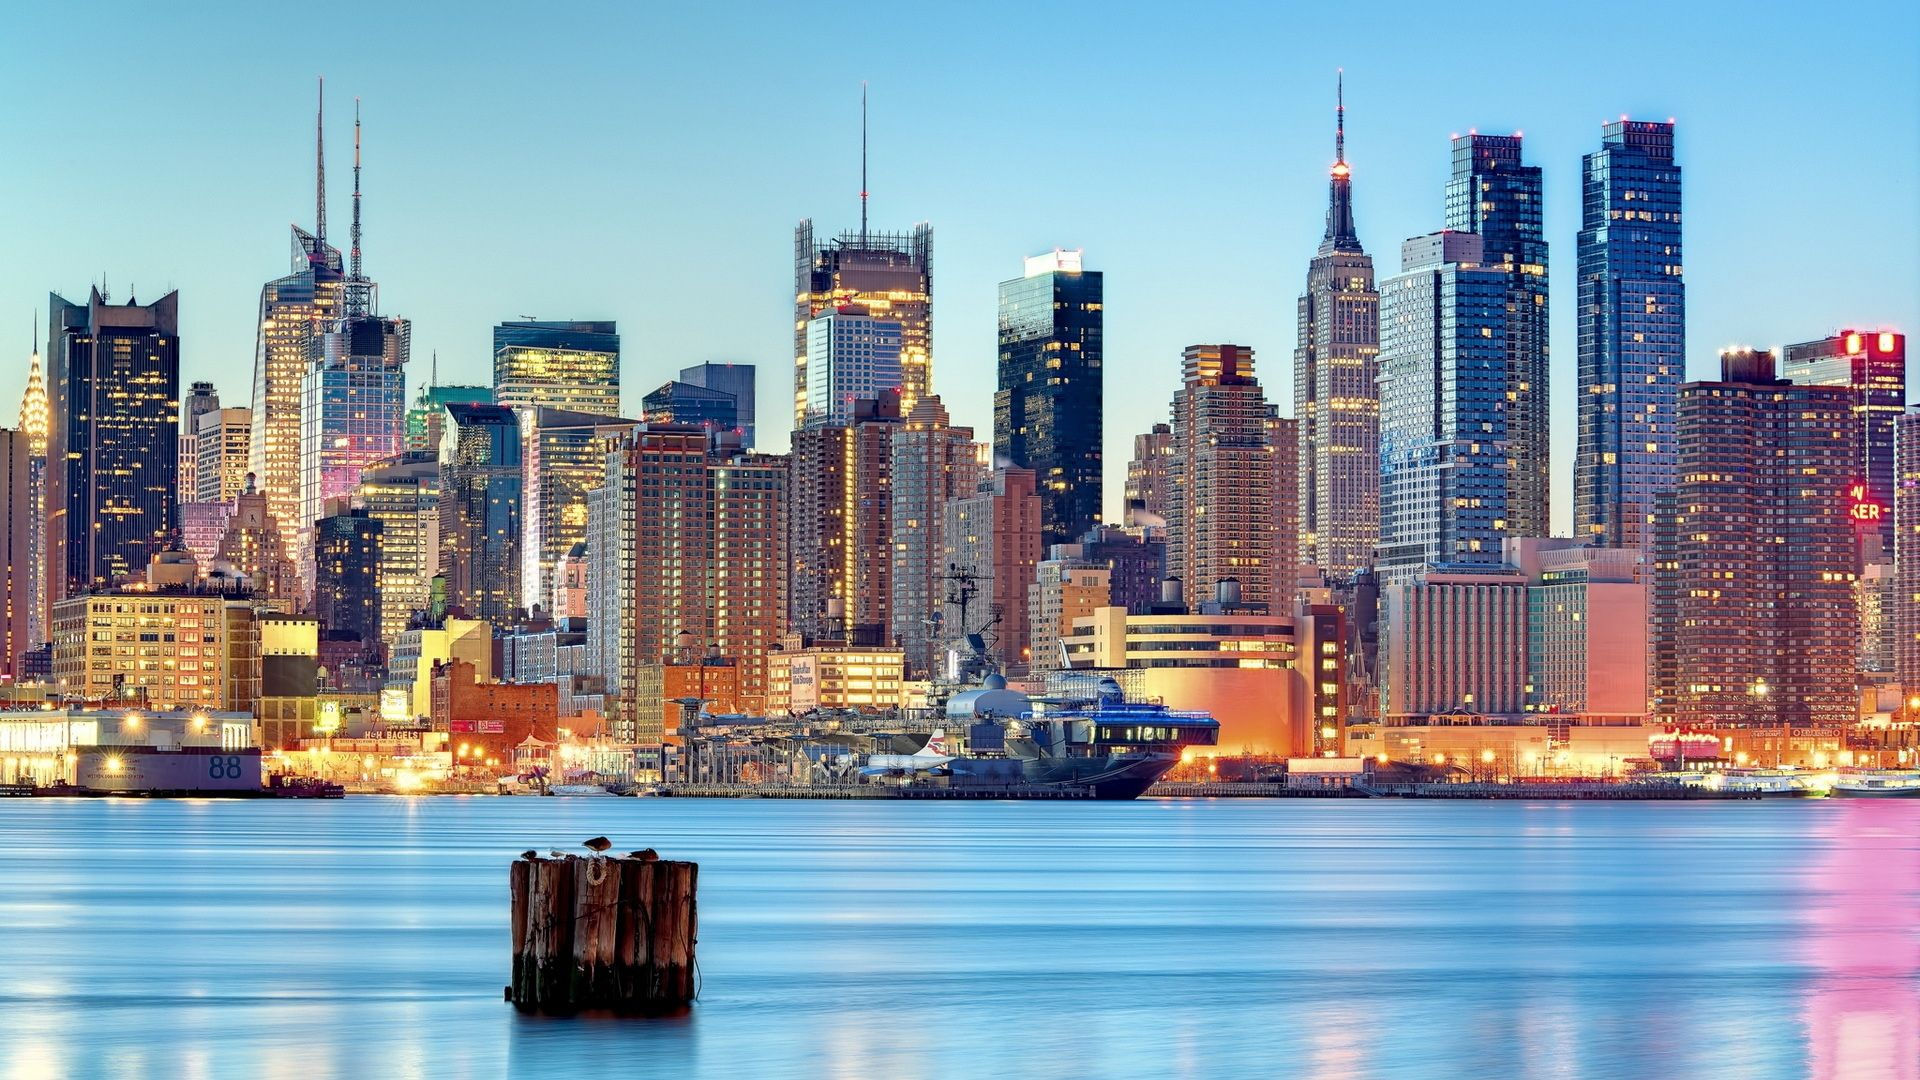 new jersey wallpapers hd 1920x1080 need #iphone #6s #plus #wallpaper